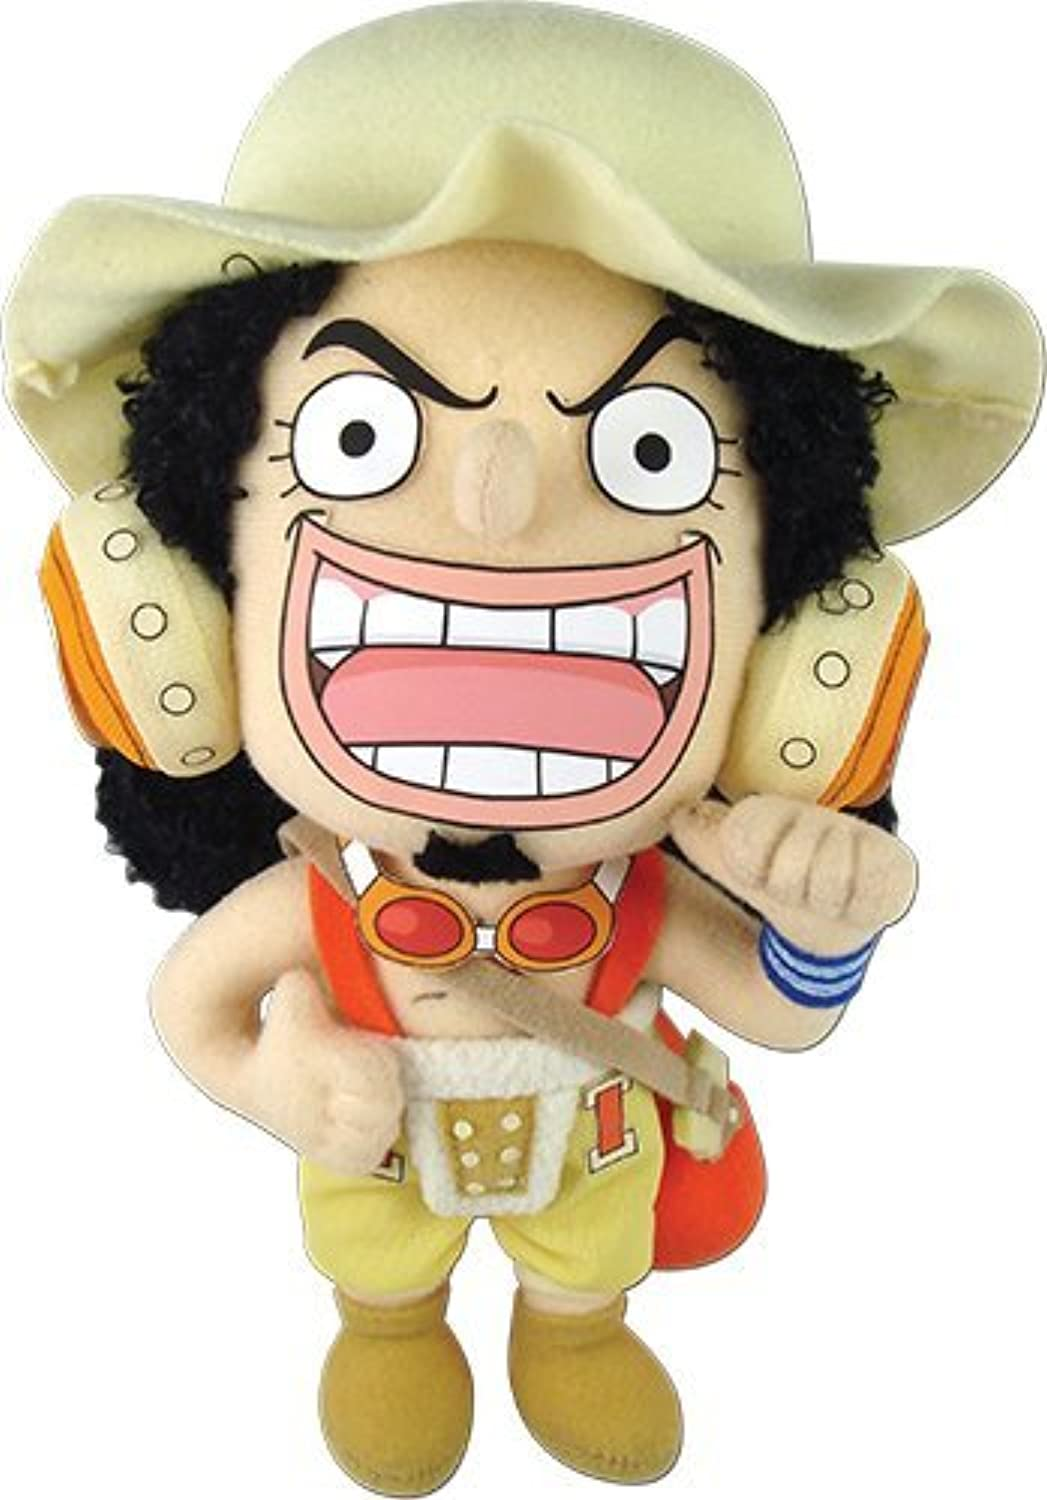 grandes ofertas Plush - - - One Piece - Usopp 8'' New Juguetes Licensed ge52802 by One Piece  compras en linea